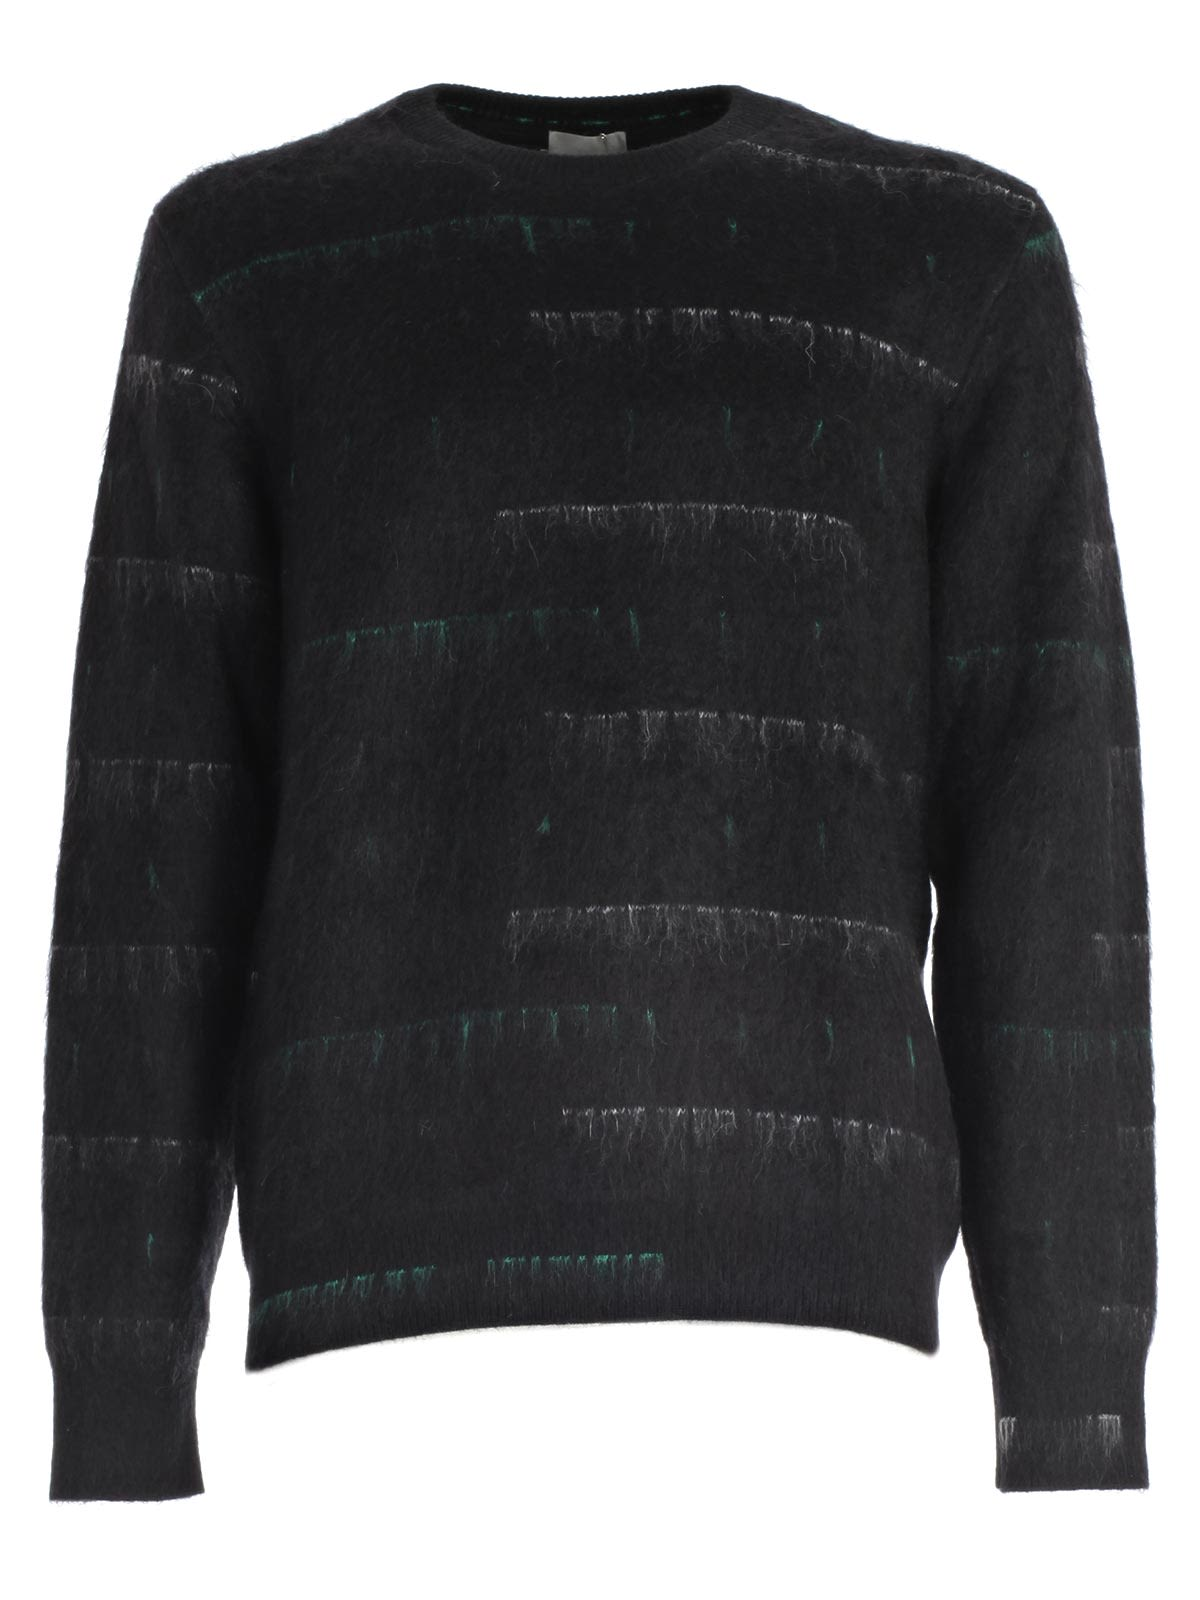 Dior Homme Sweater